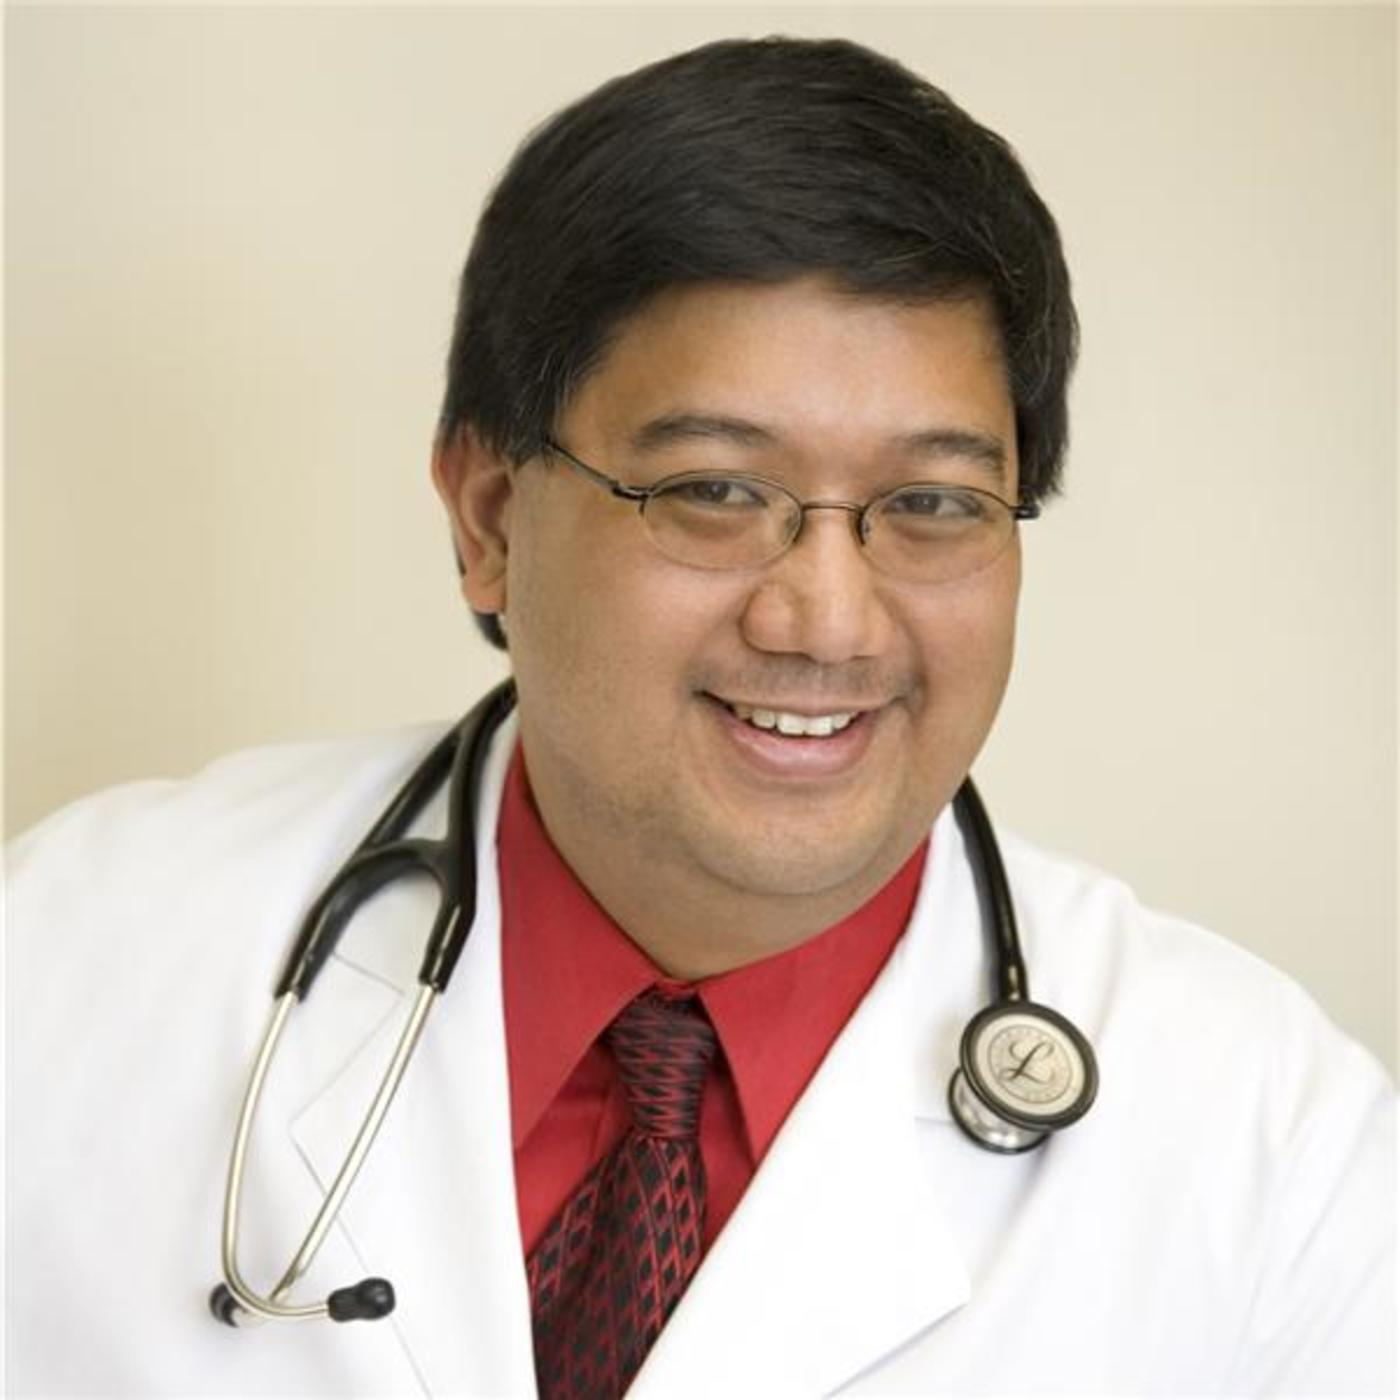 The Dr. Mike Sevilla Podcast